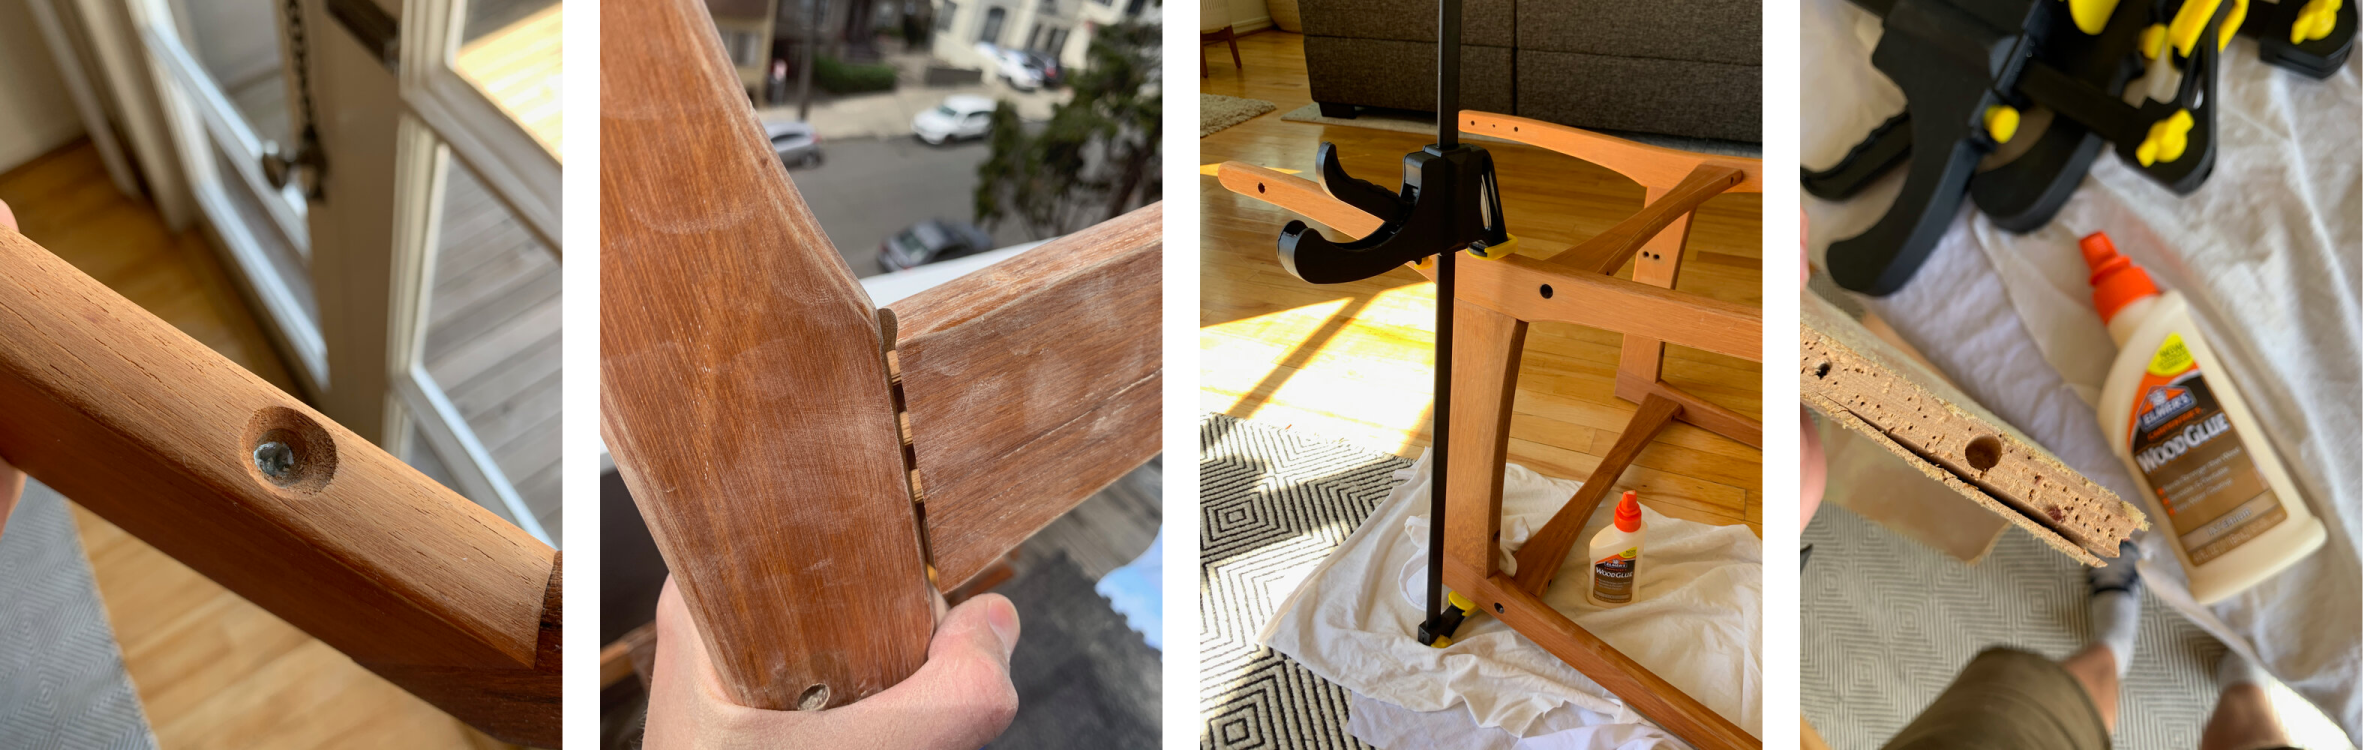 Photos showing various repairs of chair parts, using clamps and glue